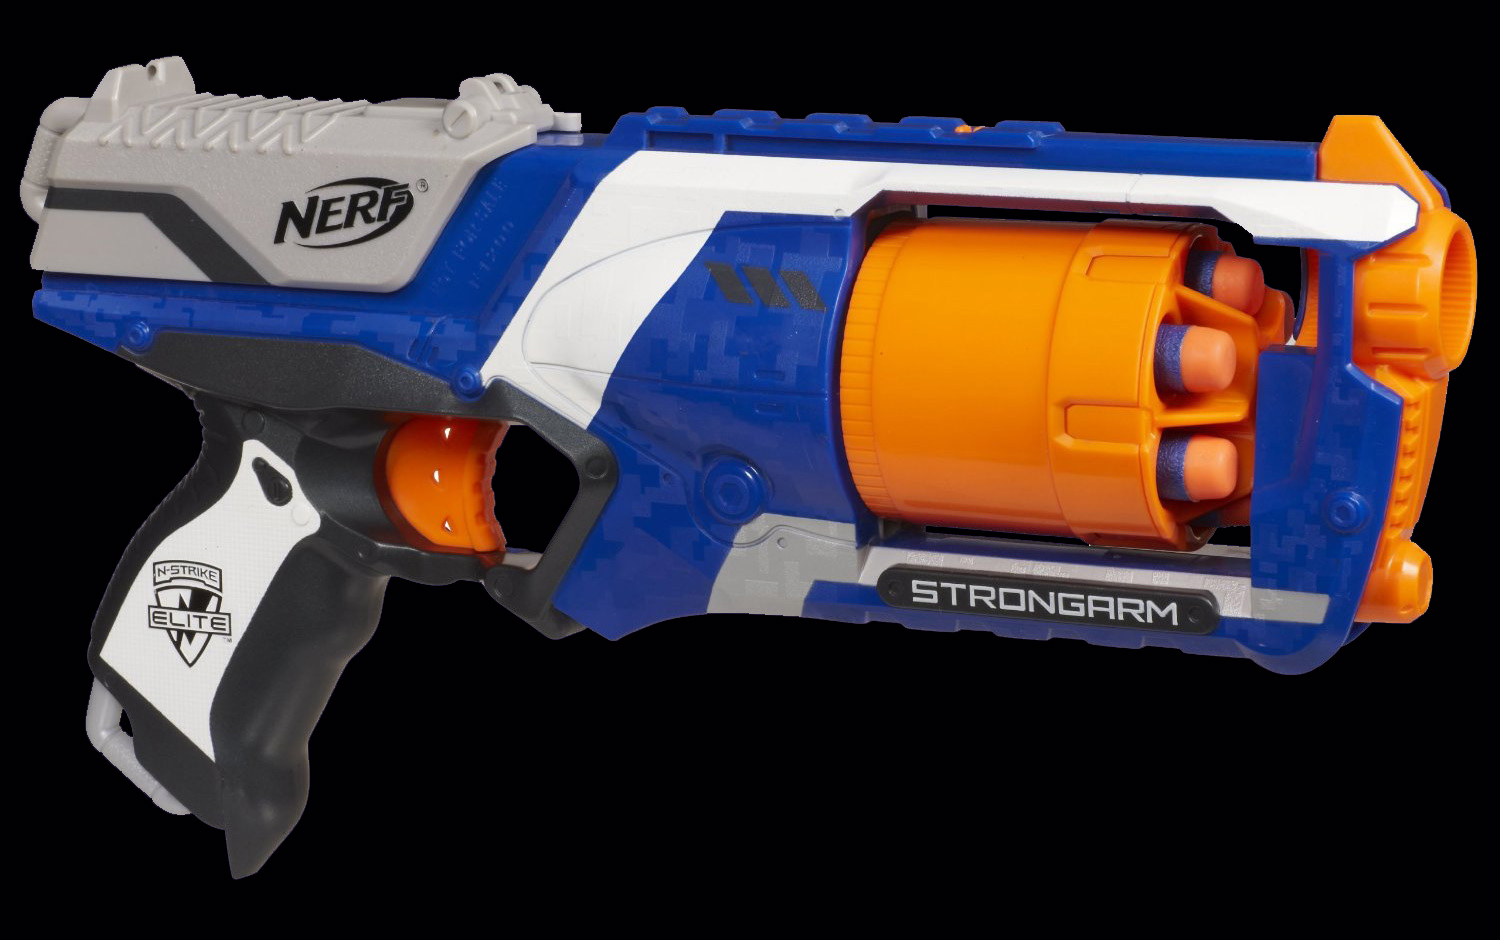 Take apart a Nerf GunBlaster to see how it works - (Mechanical engineering)